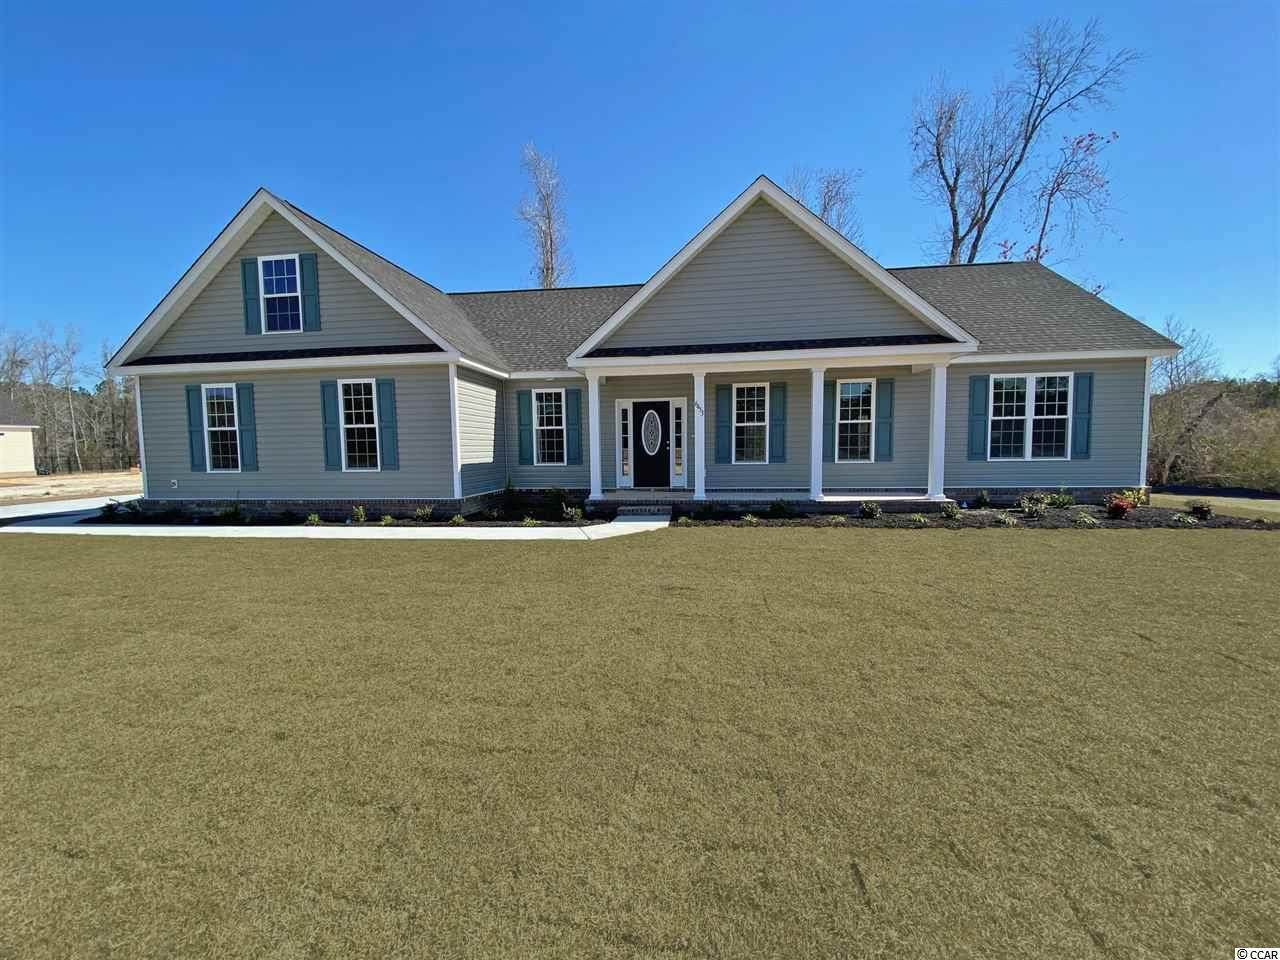 5252 Cates Bay Hwy. - Photo 1